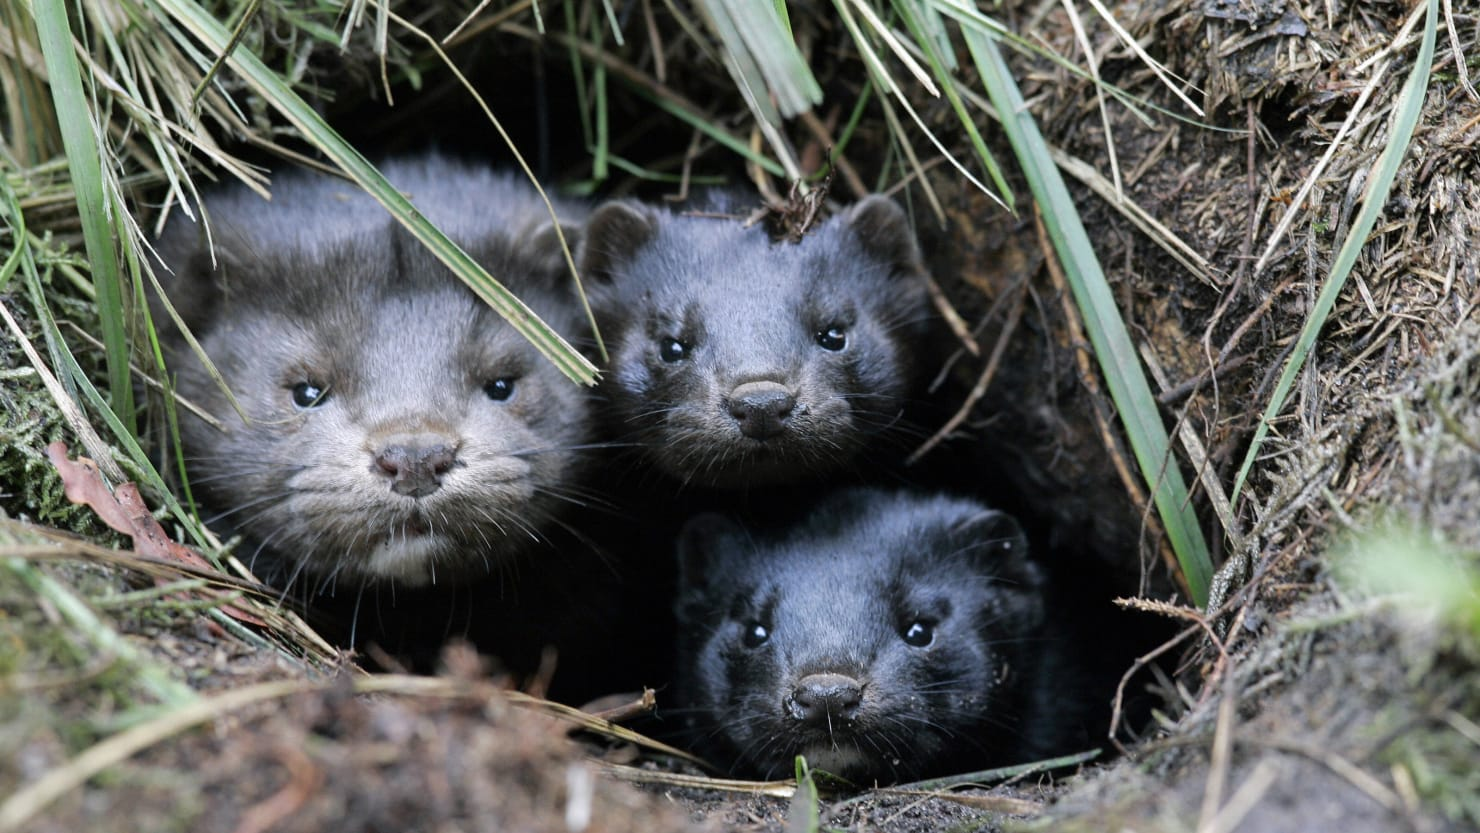 Oregon Mink Farm Reports COVID-19 Outbreak